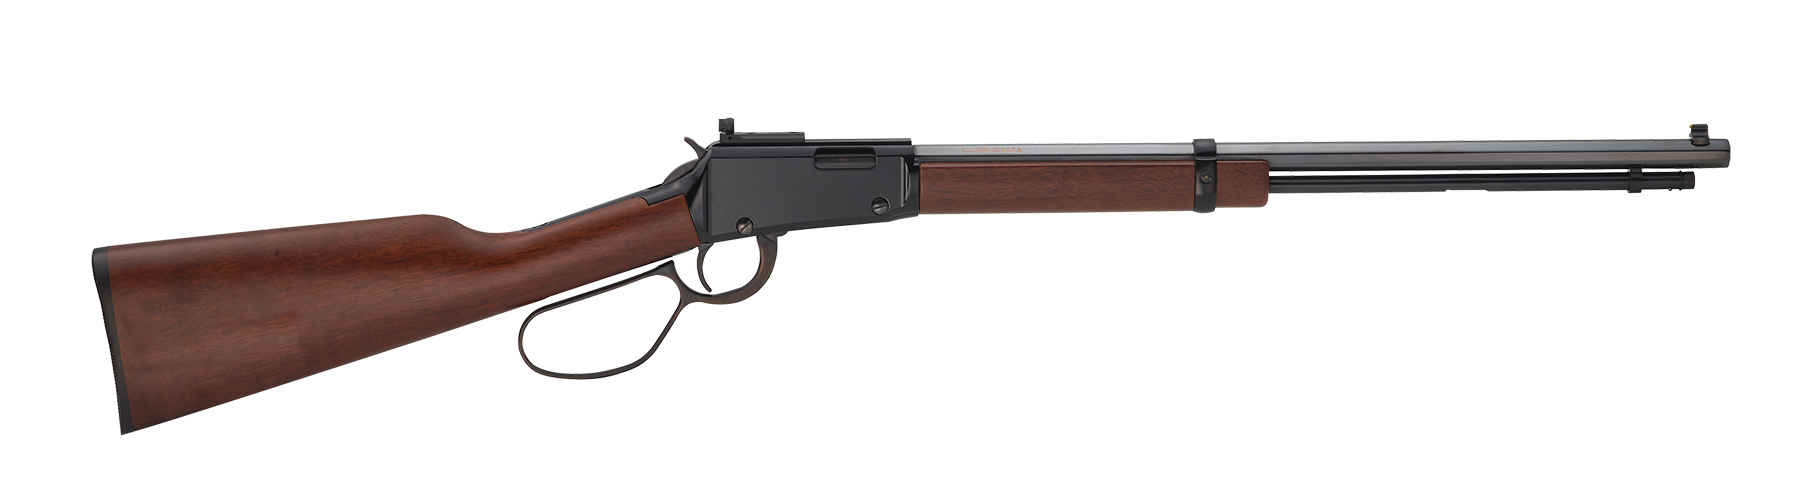 Henry H001TLP Small Game Carbine Lever Action 22 Long Rifle Lever 22 Short/Long/Long Rifle 16.25